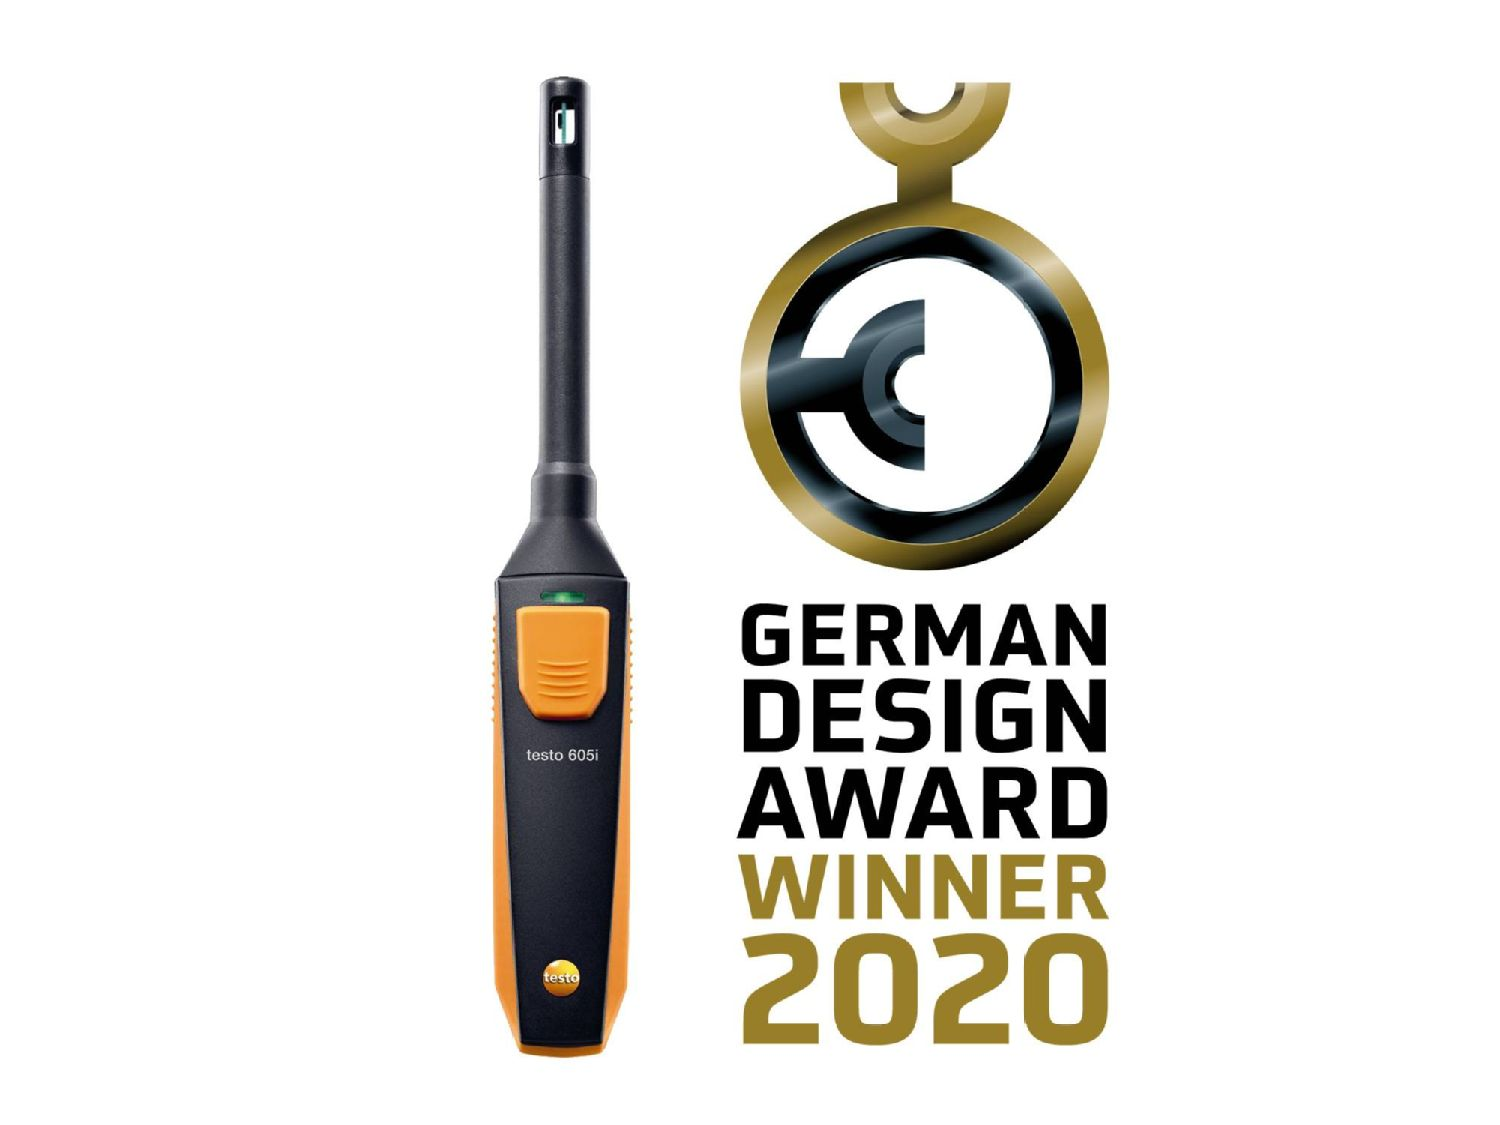 testo 605i German Design Award